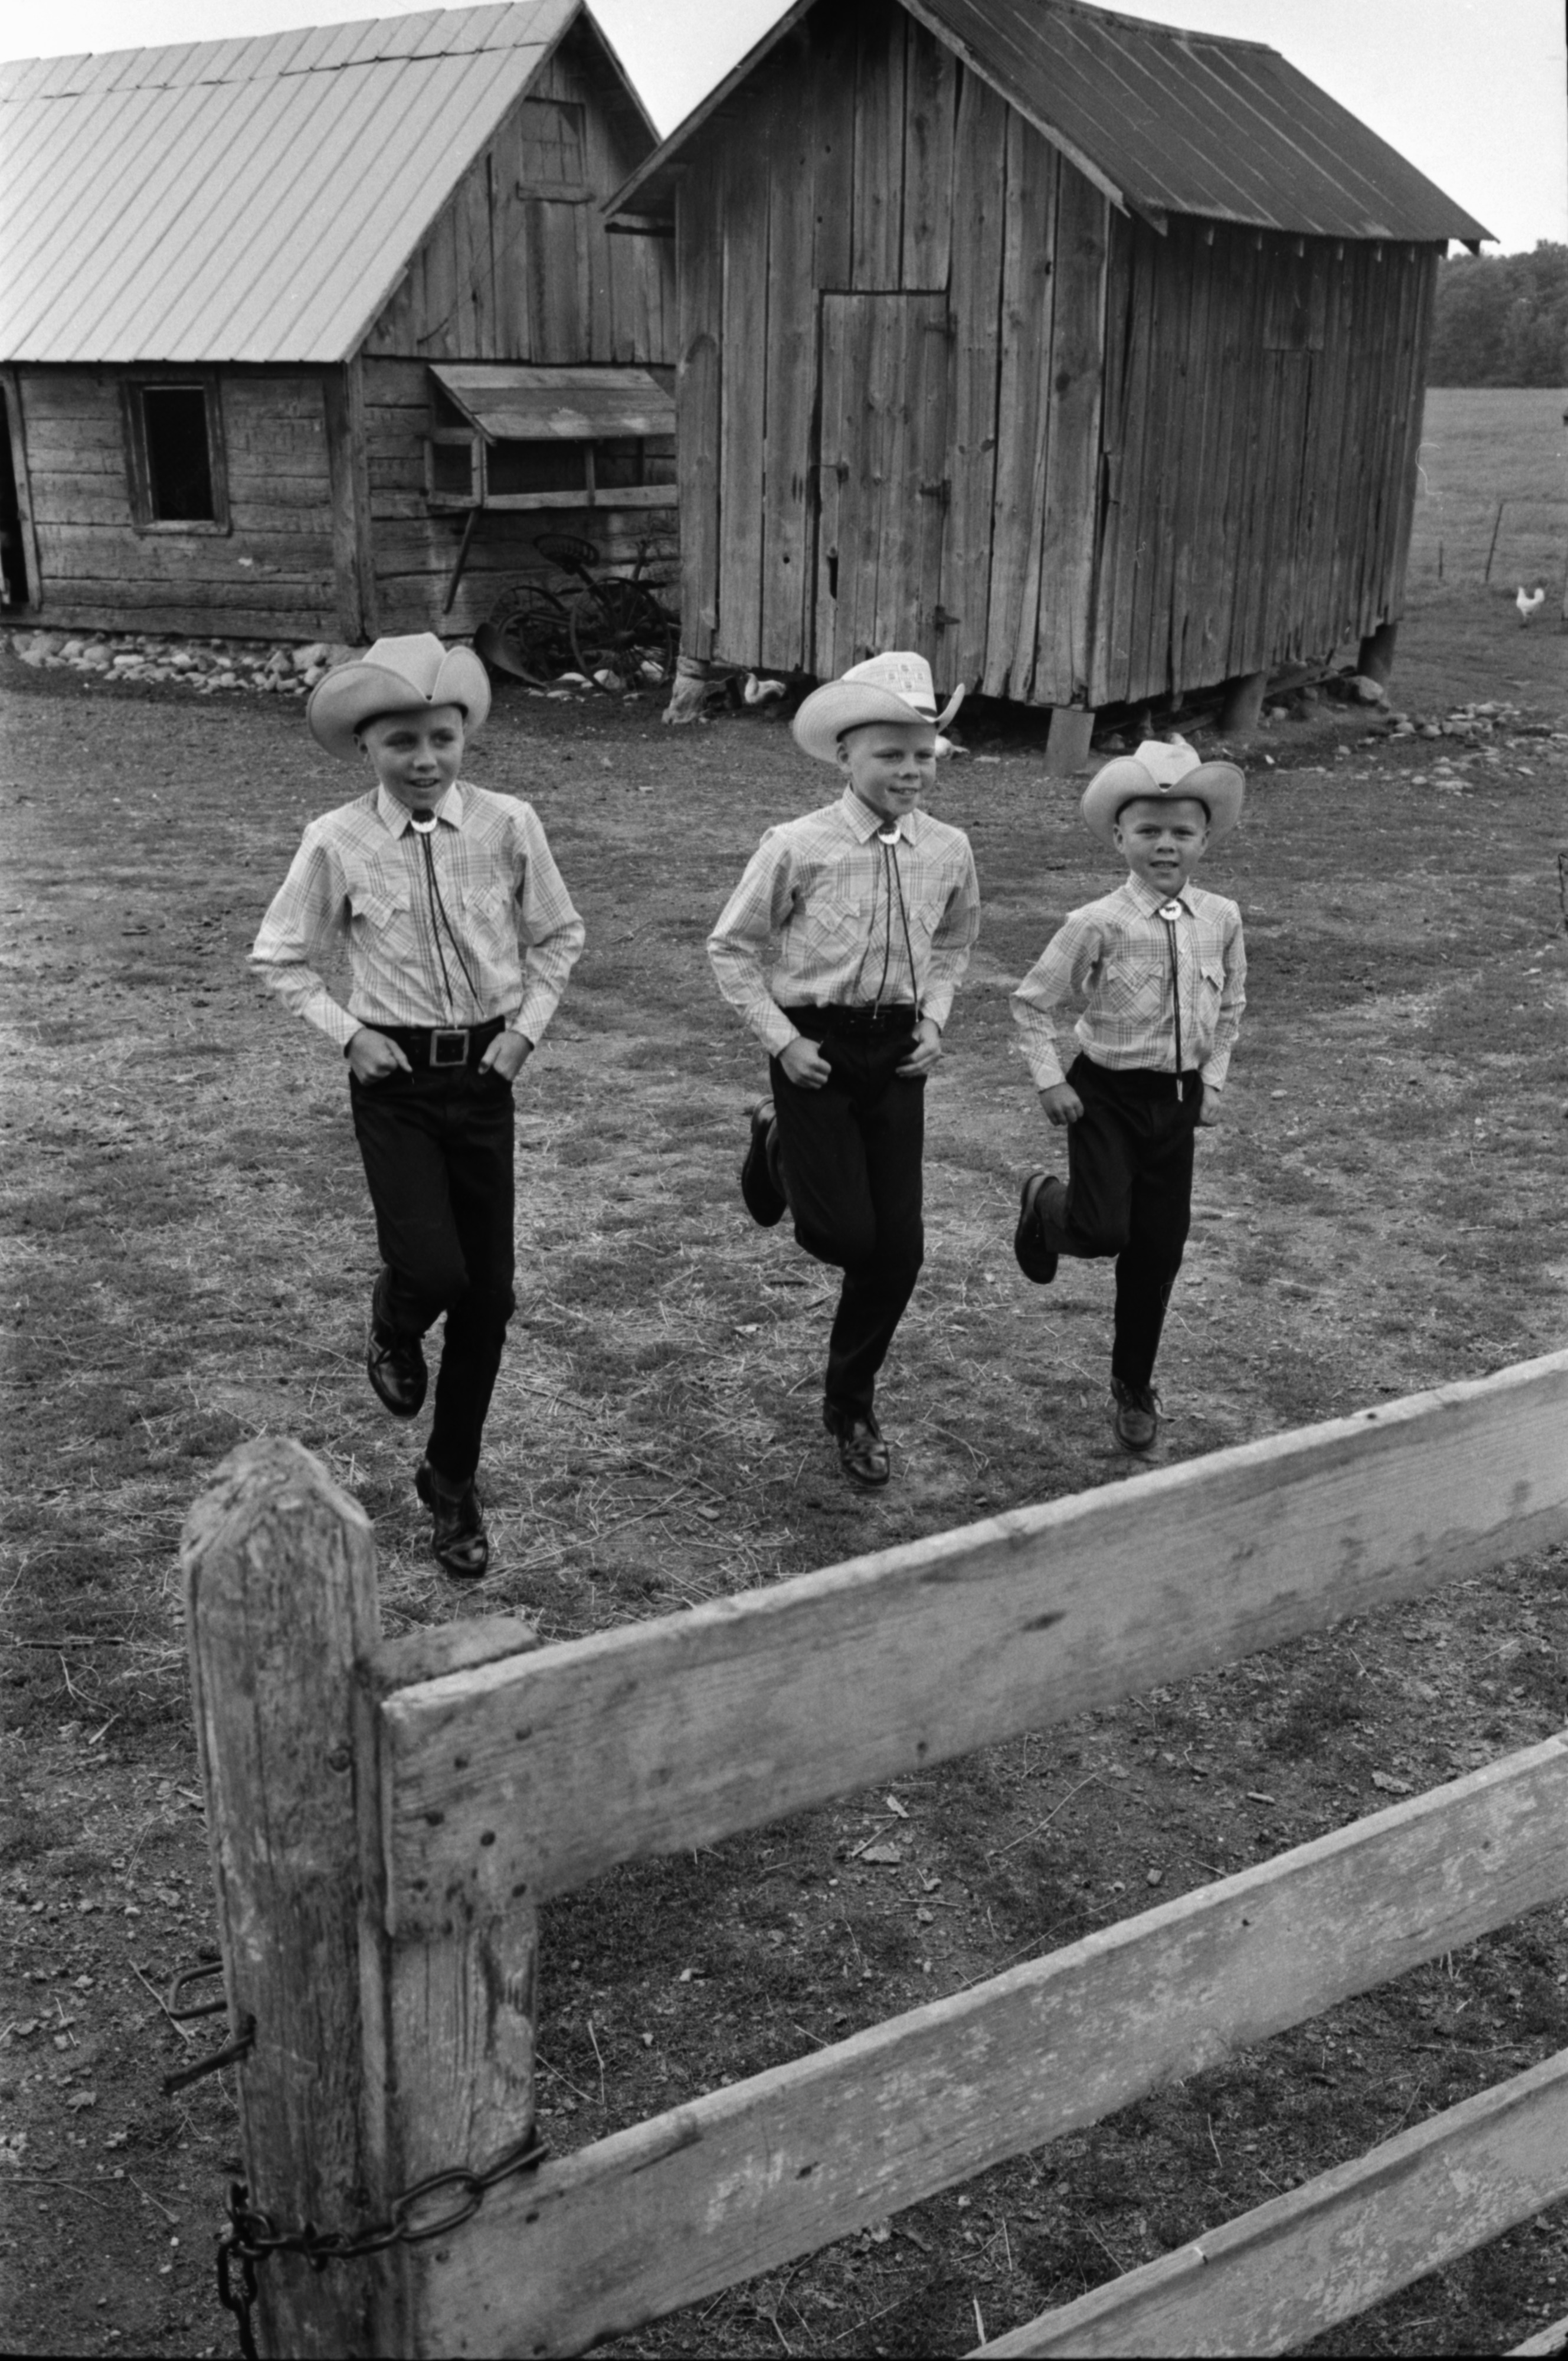 'Cowboys' Too Young, July 1969 image